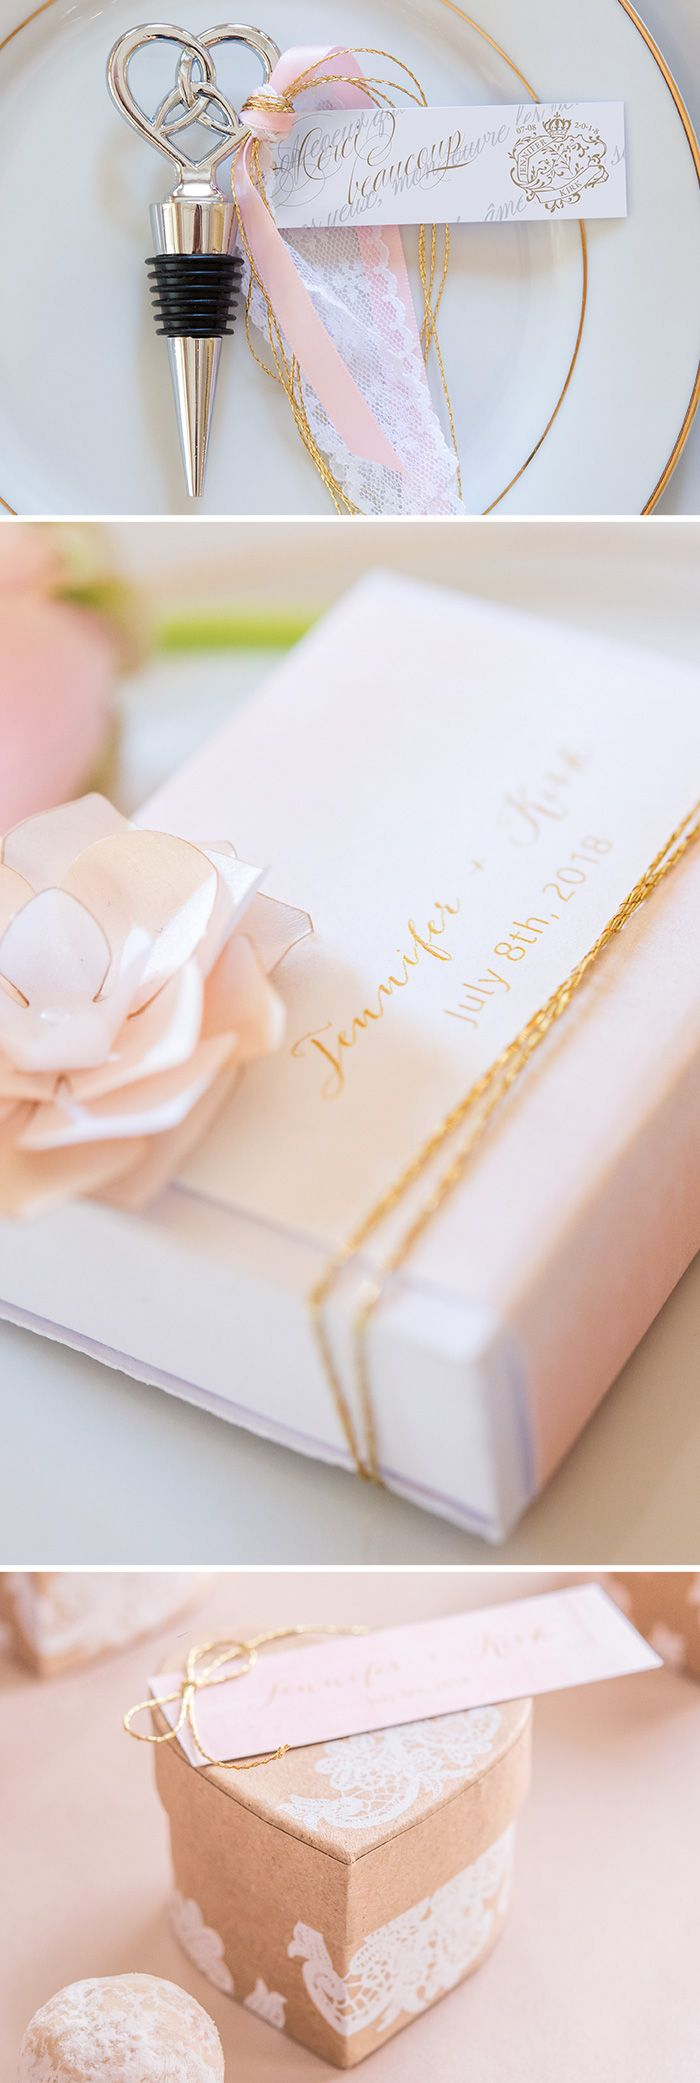 These adorable wedding favor ideas are sure to impress your guests ...